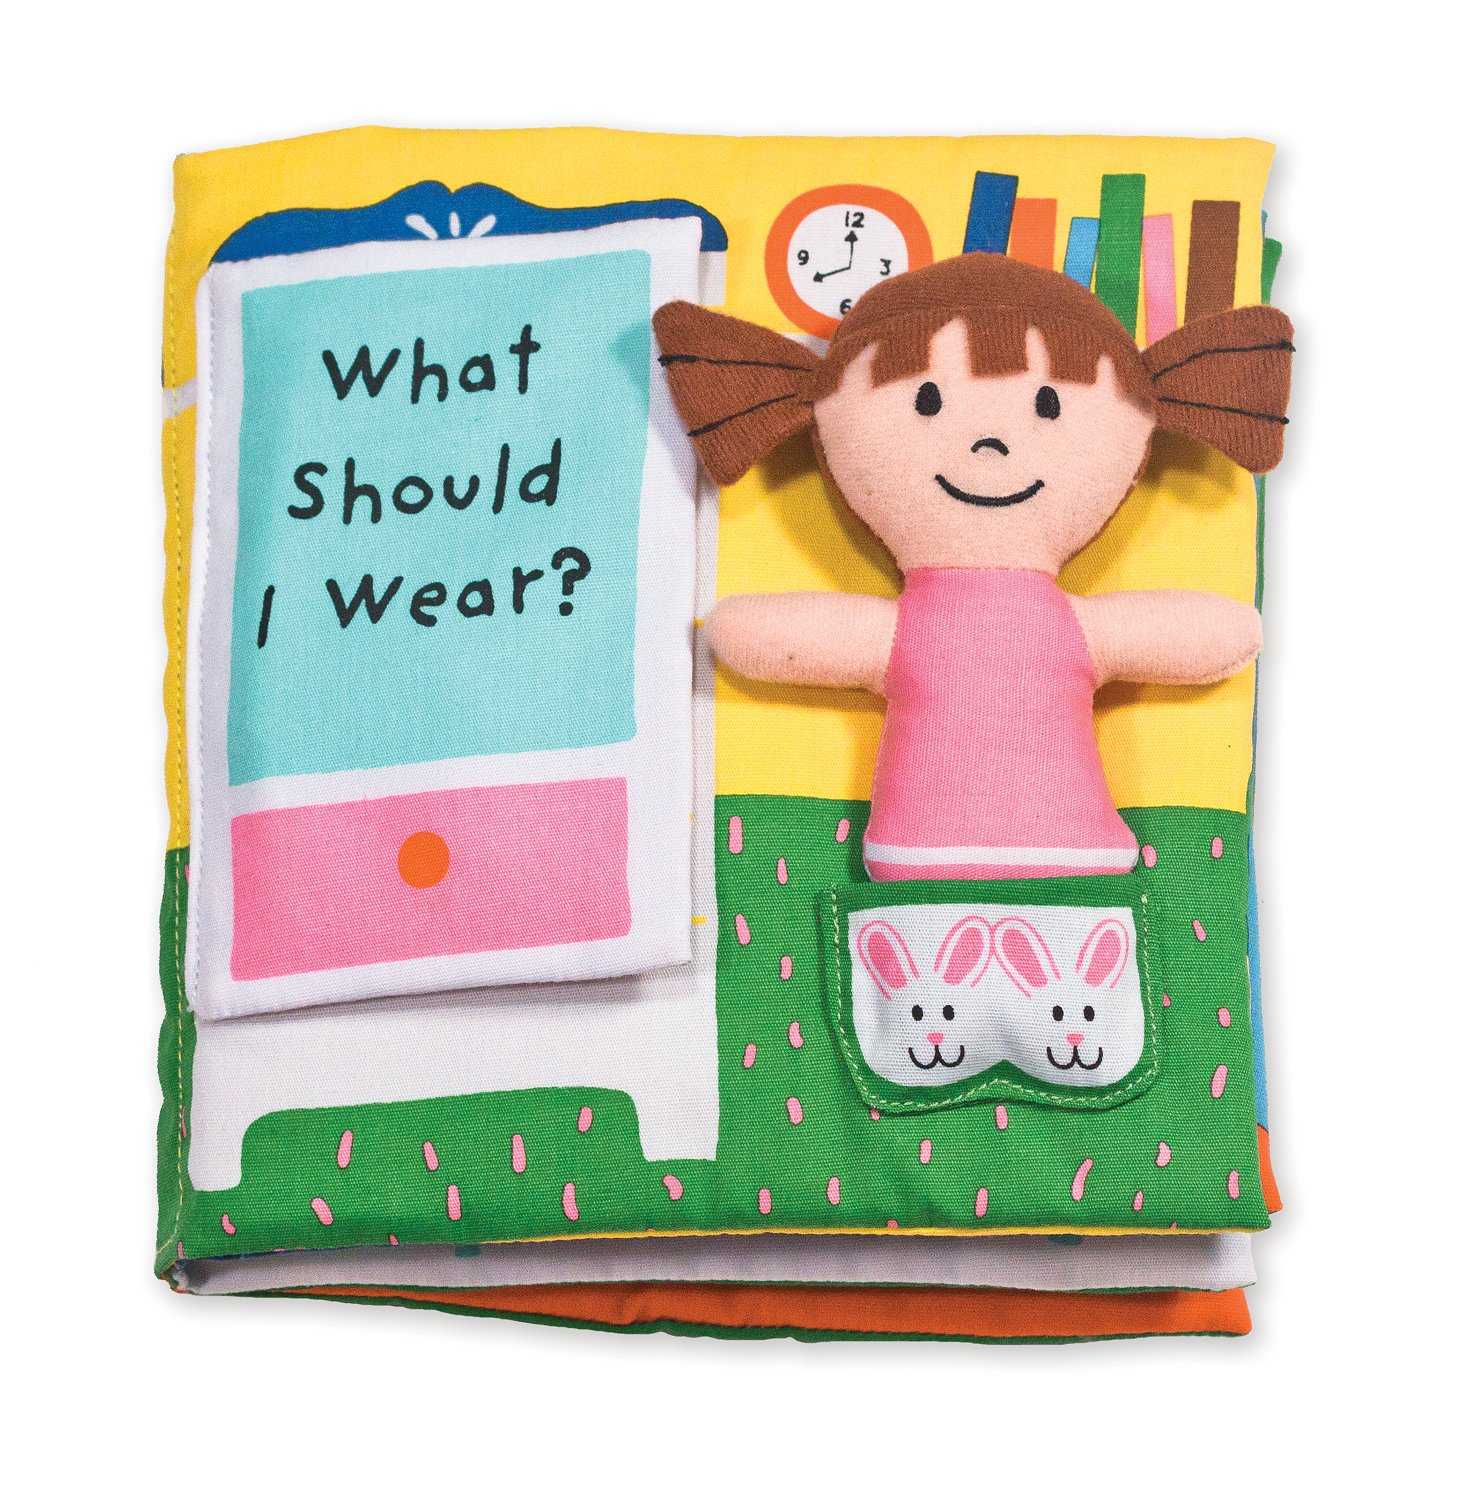 Melissa & Doug Soft Activity Baby Book - What Should I Wear? 9204